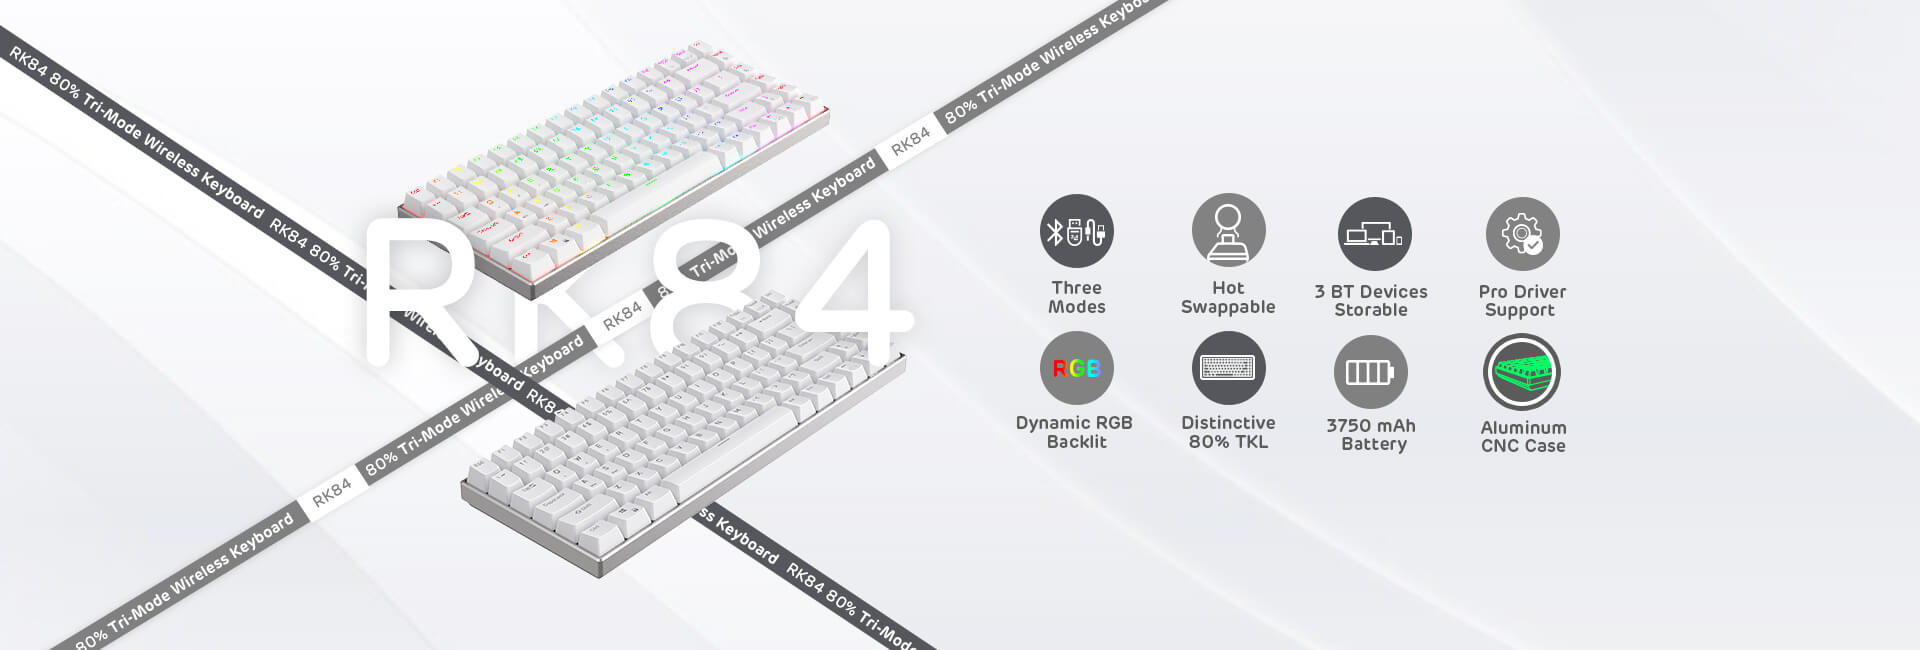 RK ROYAL KLUDGE RK84 Pro 80% RGB Triple Mode BT5.0/2.4G/Wired Hot-Swappable Mechanical Keyboard